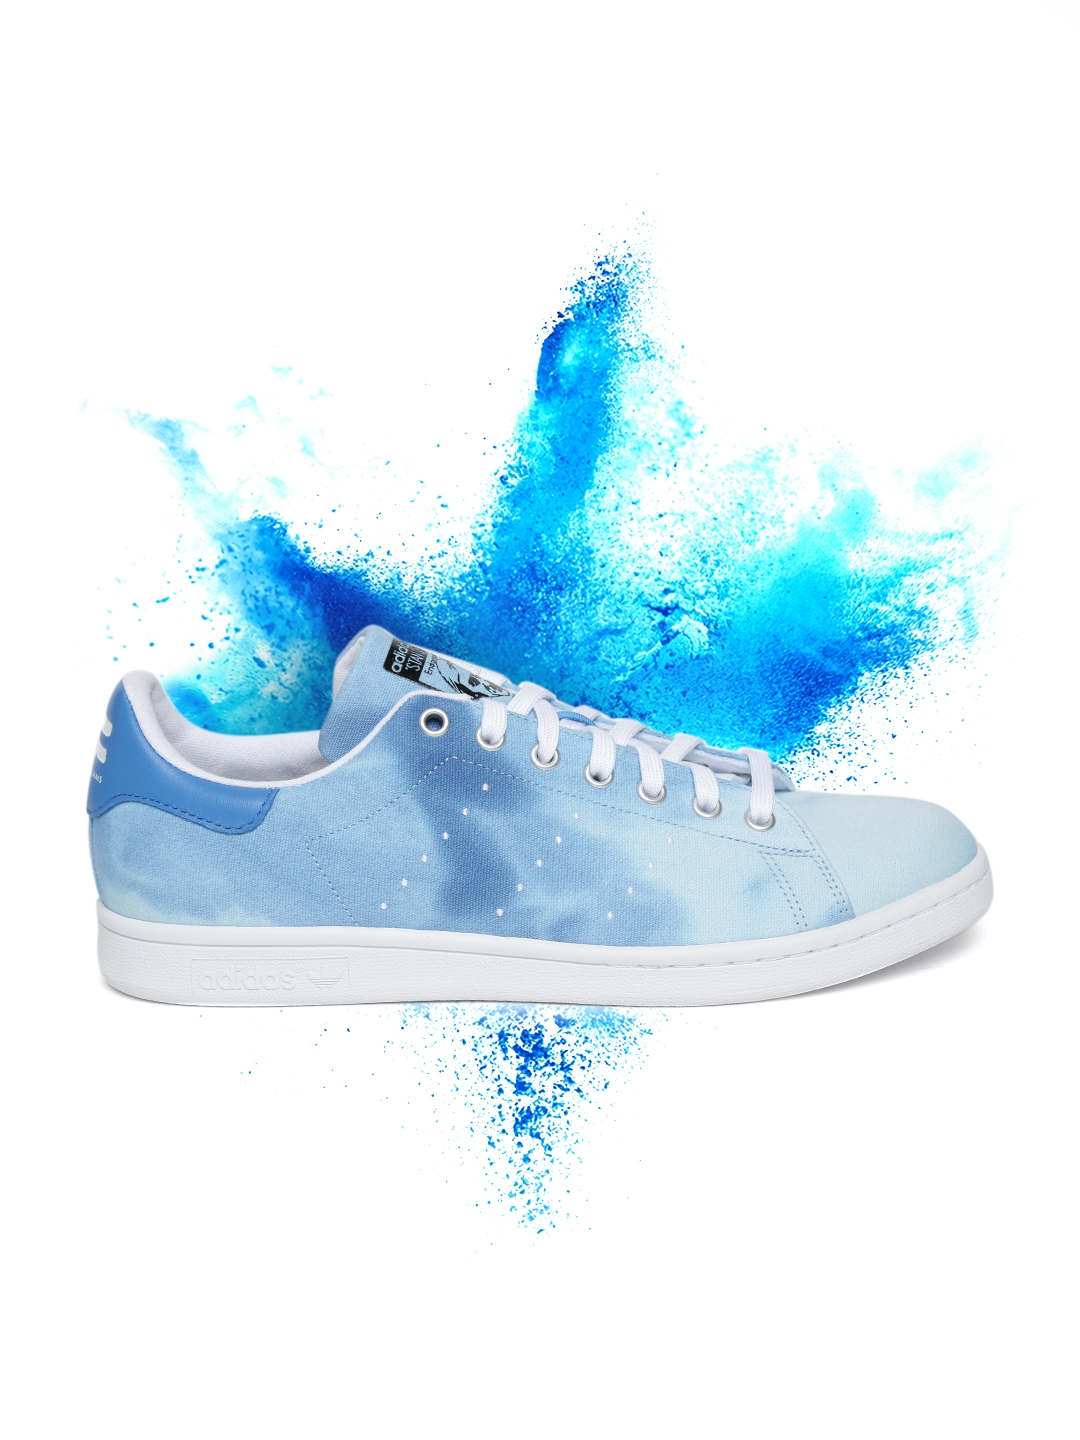 Buy ADIDAS Originals Men Blue HU Holi Stan Smith Sneakers - Casual ... f64d6a75f